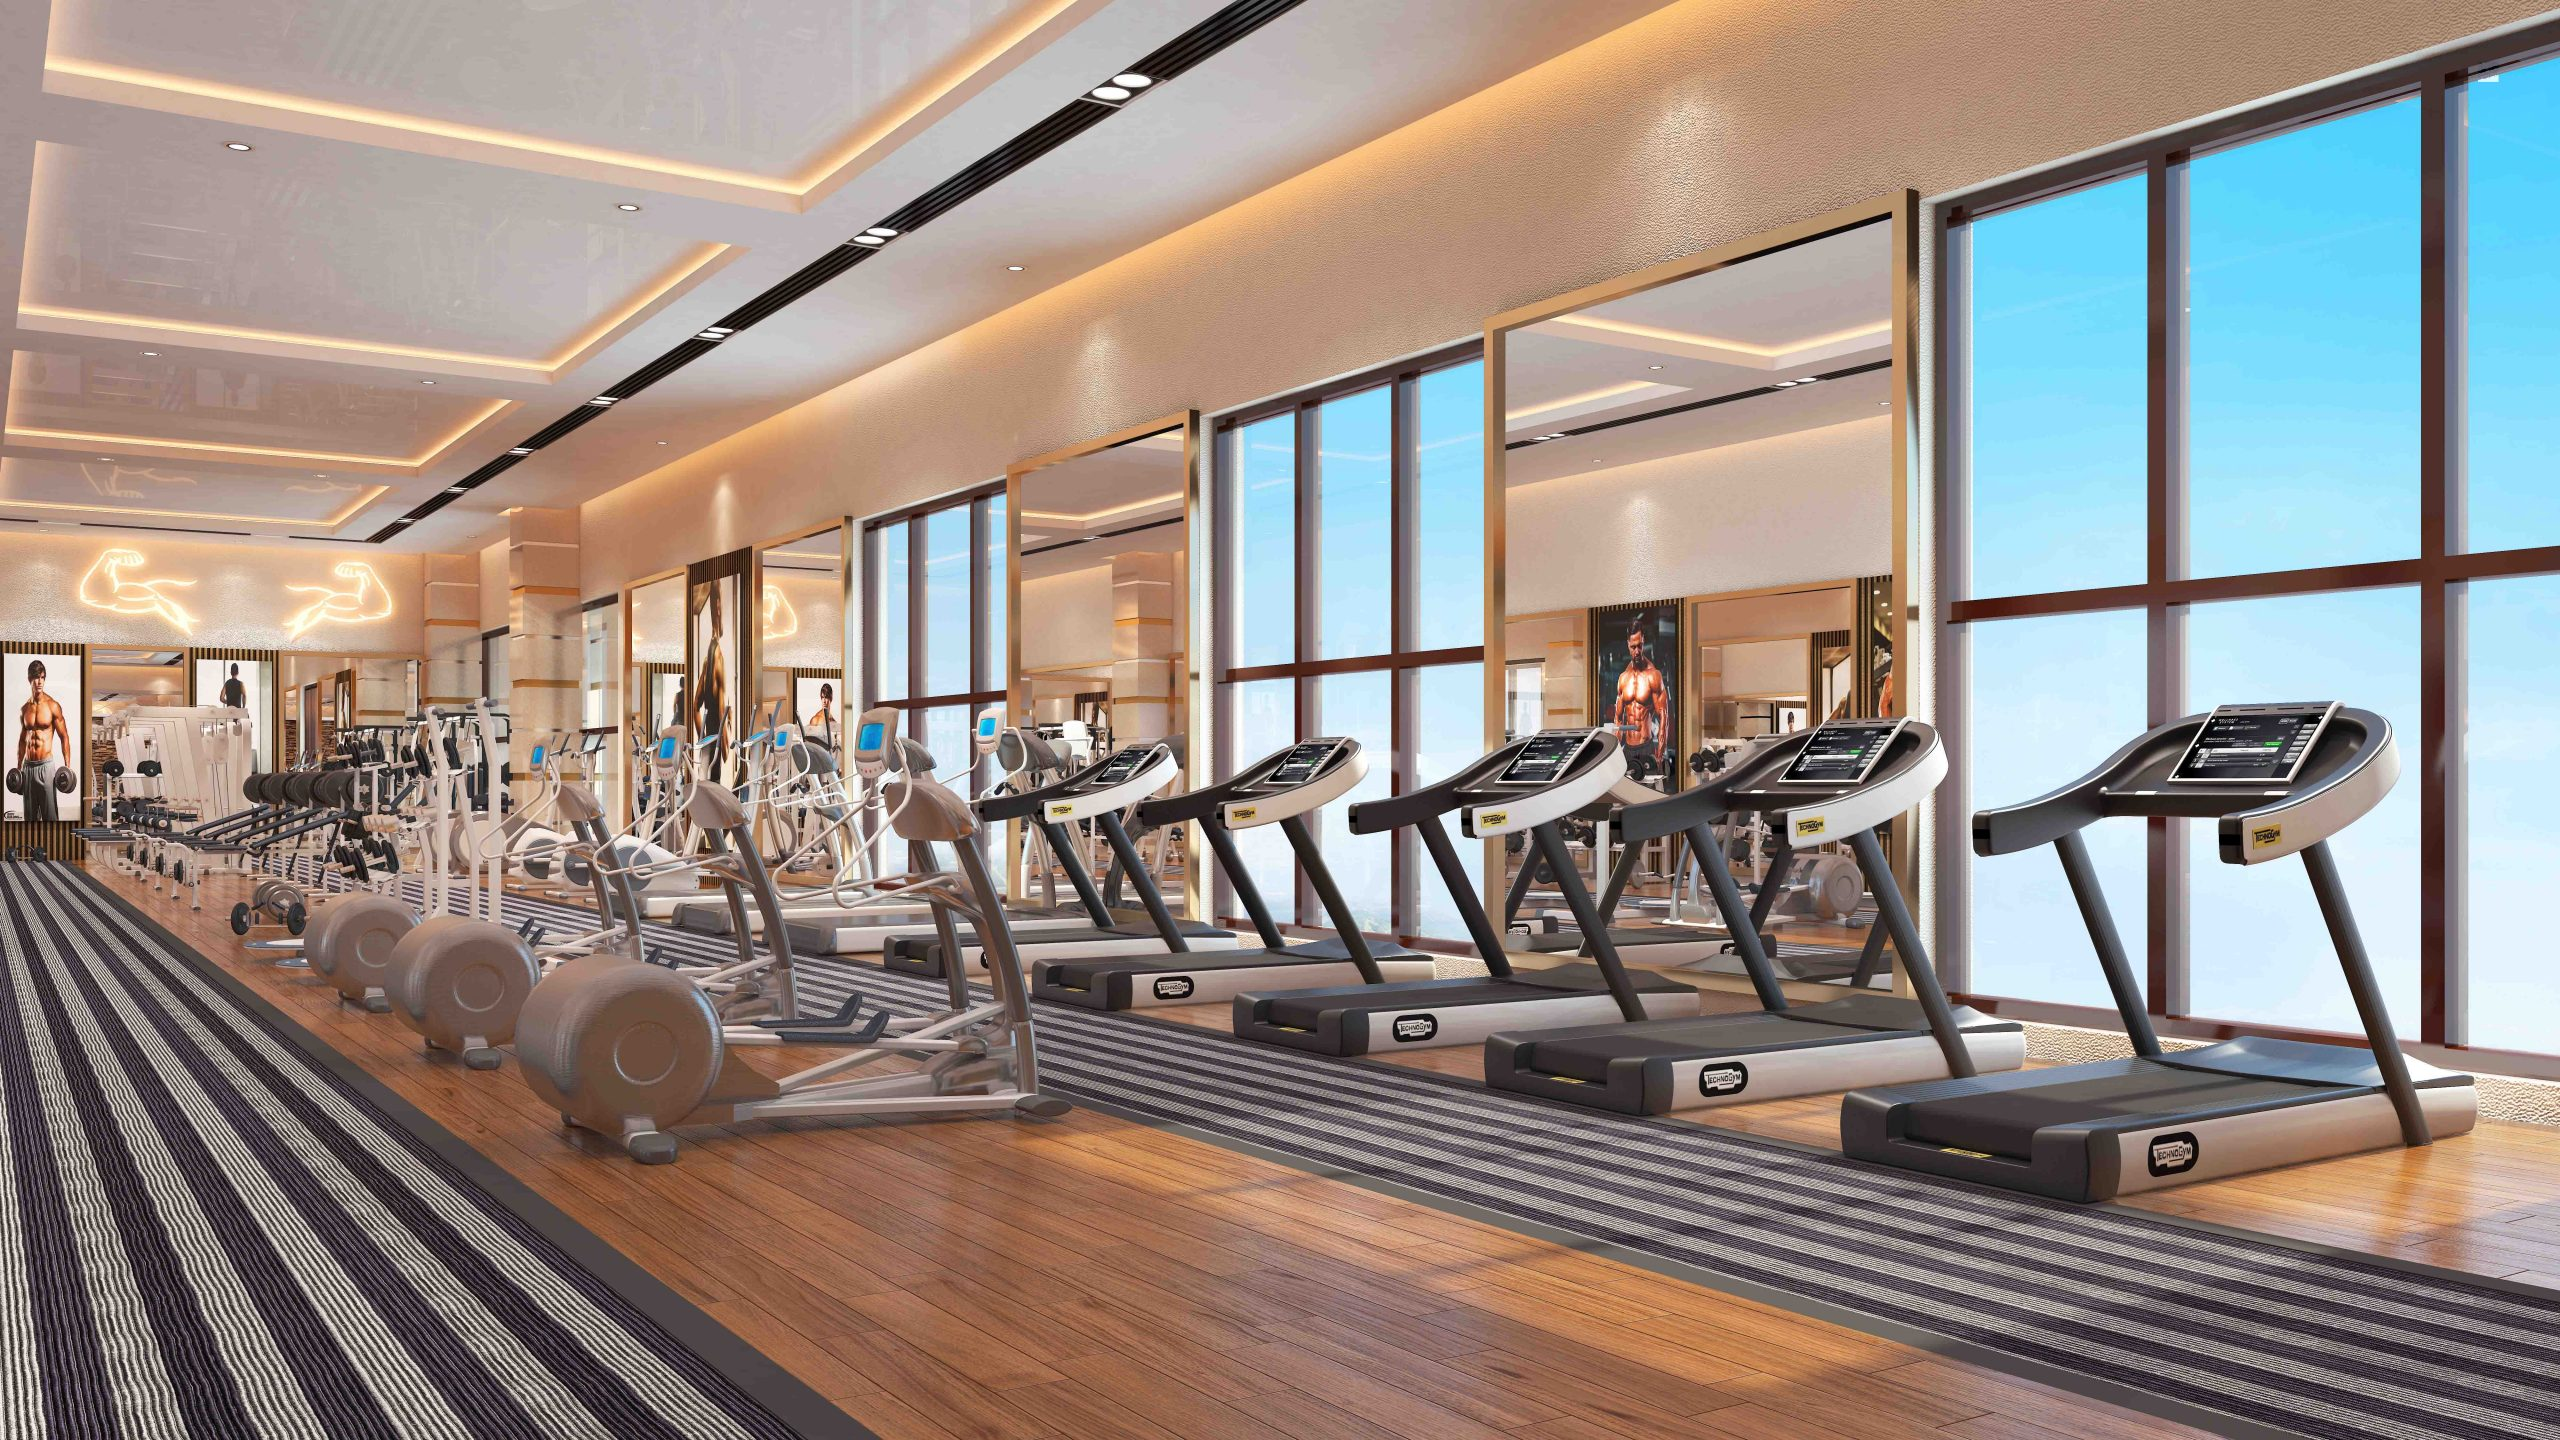 Gym also available in gulberg islamabad